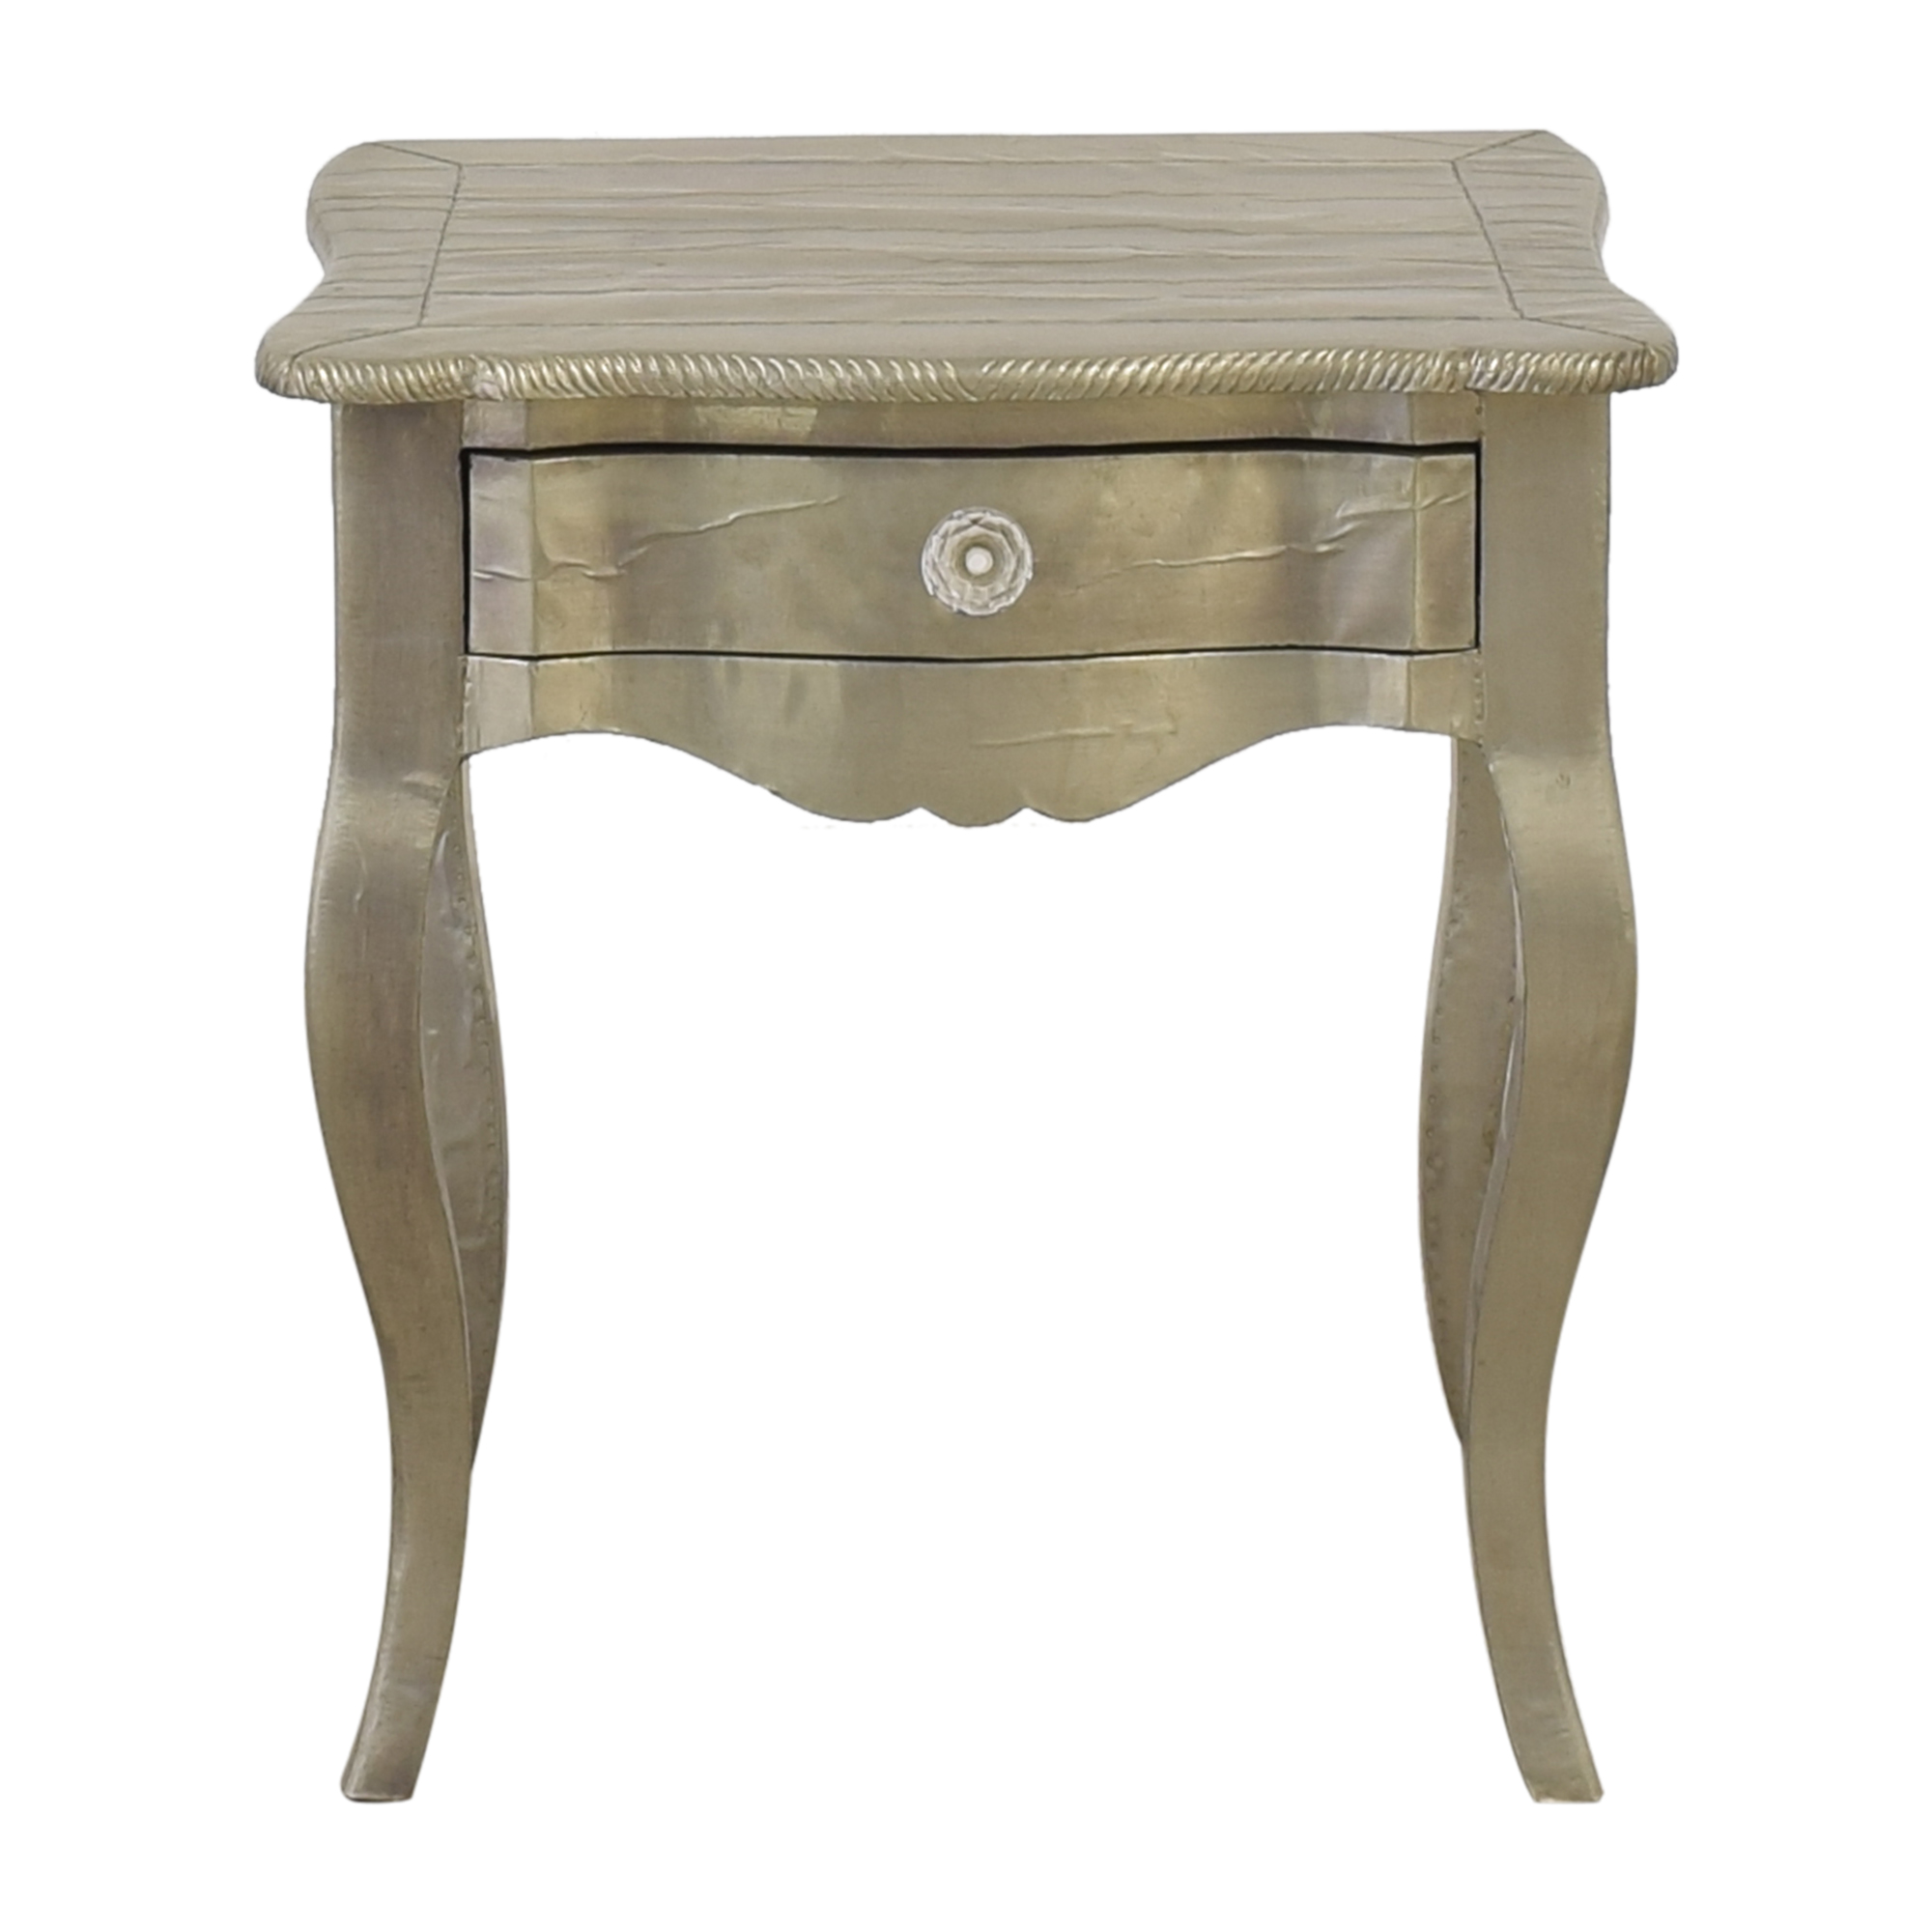 ABC Carpet & Home ABC Carpet & Home Wood Silver Leaf Bedside Table on sale